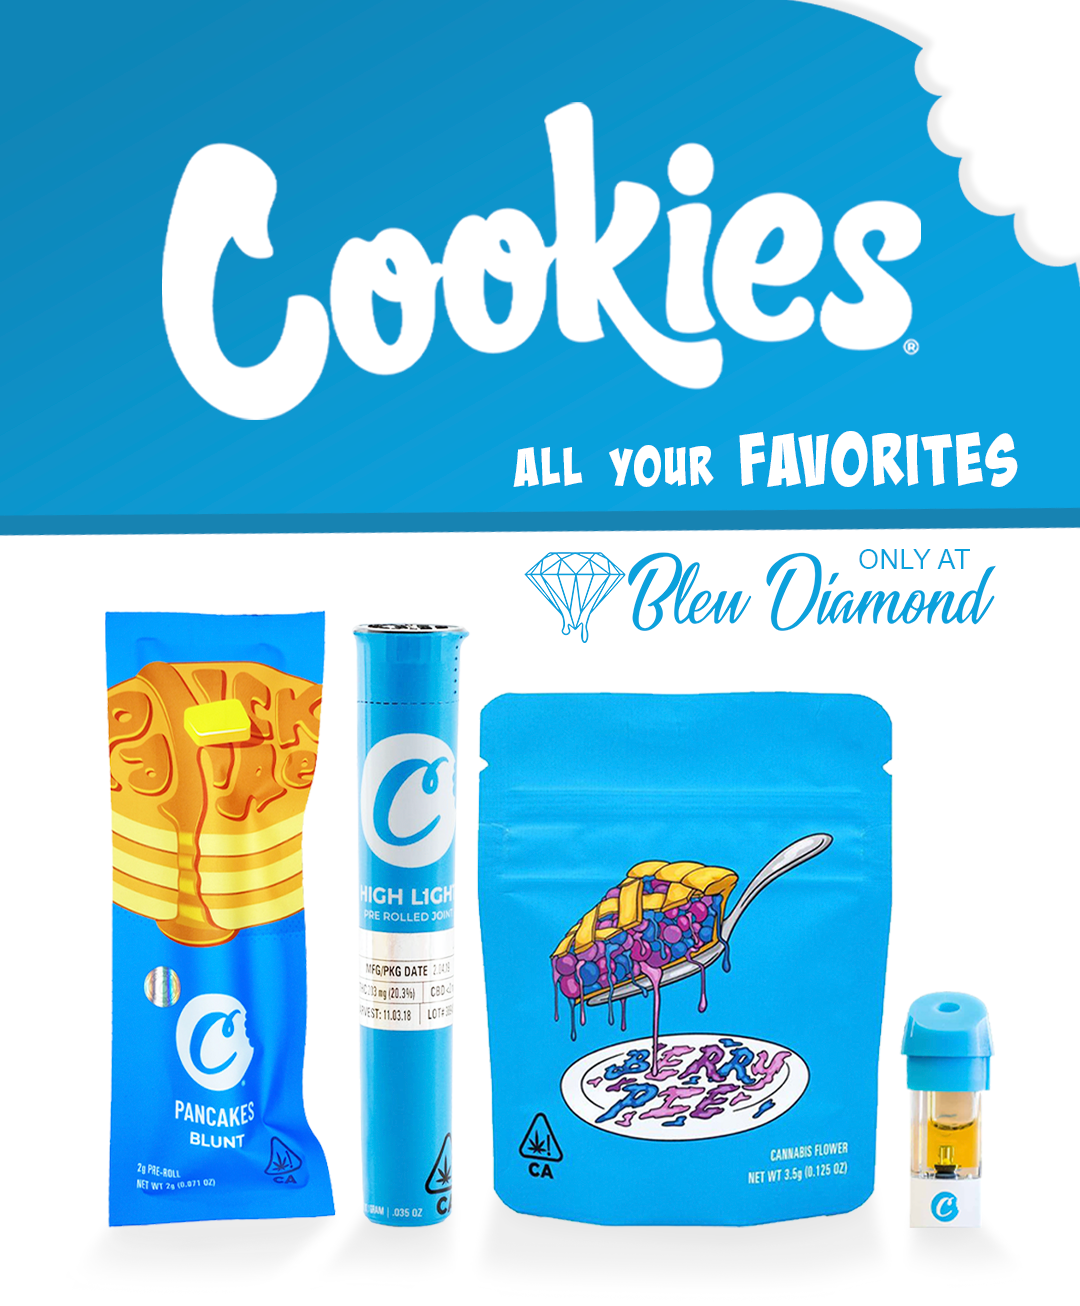 Cookies all your Favorites only at Bleu Diamond